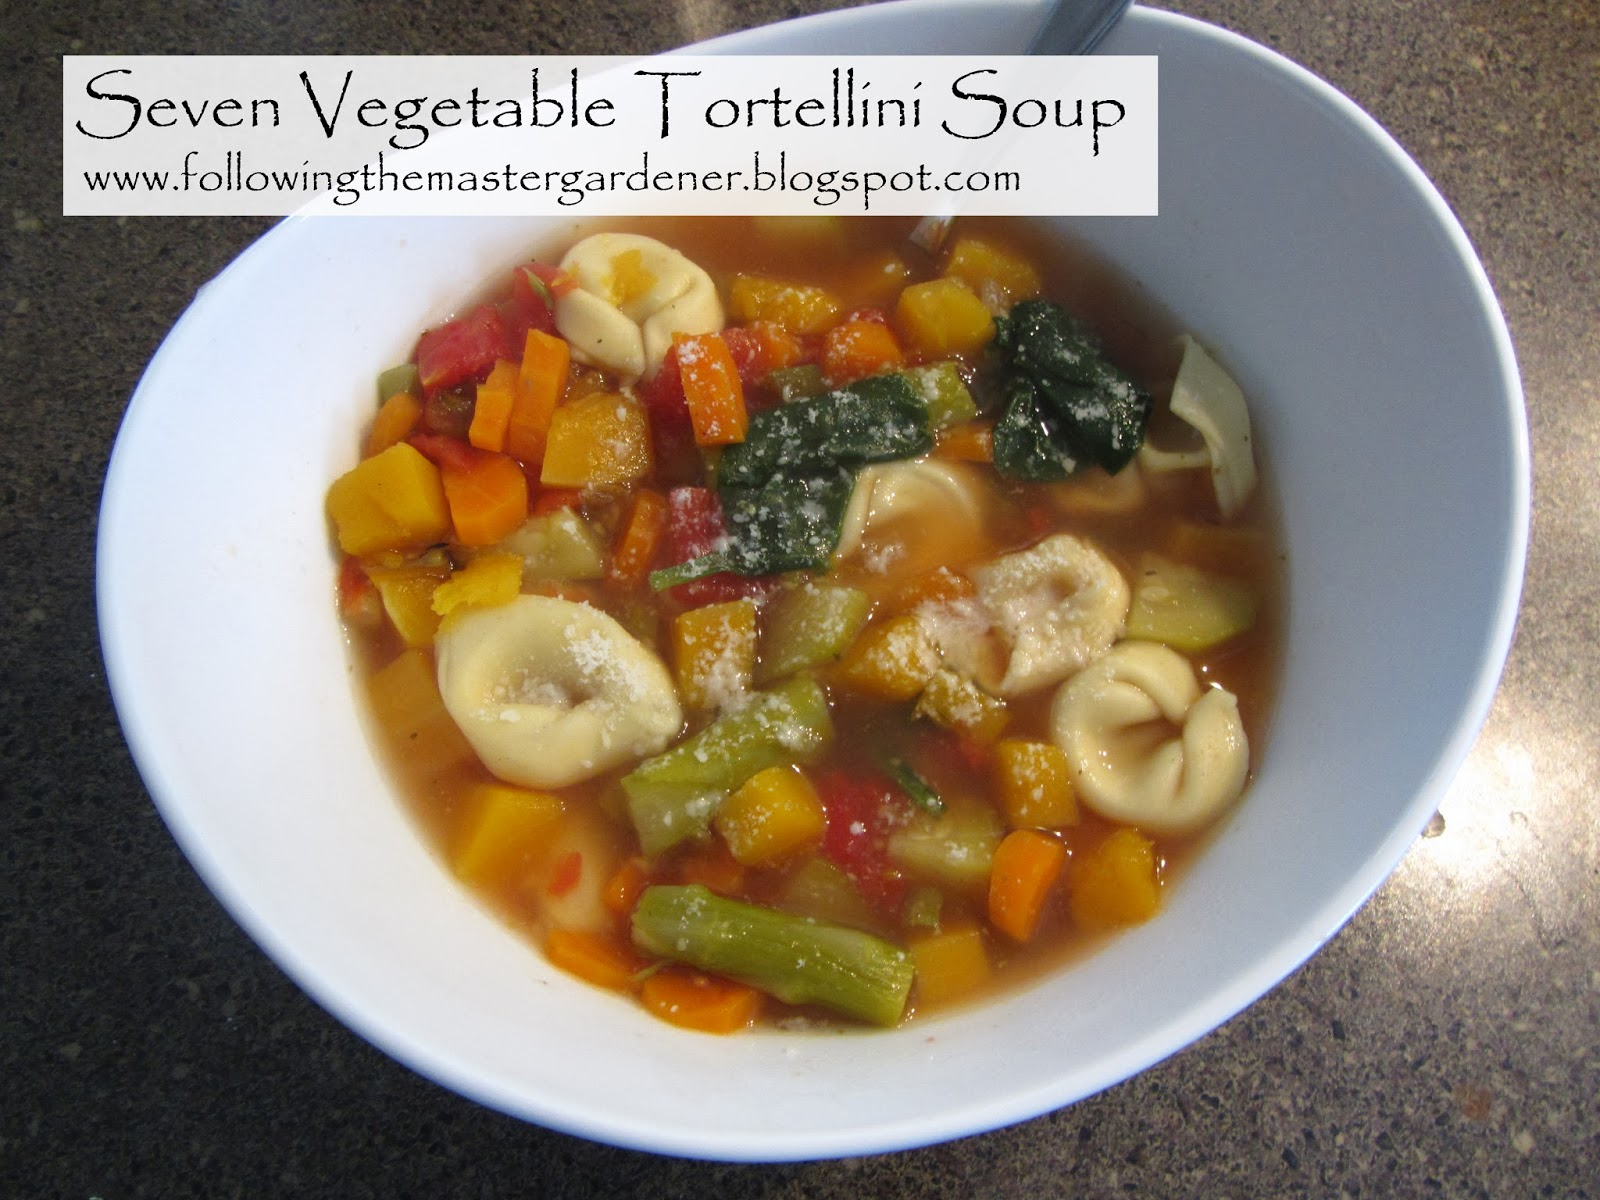 ... Master Gardener: Seven Vegetable Tortellini Soup (in a Slow Cooker